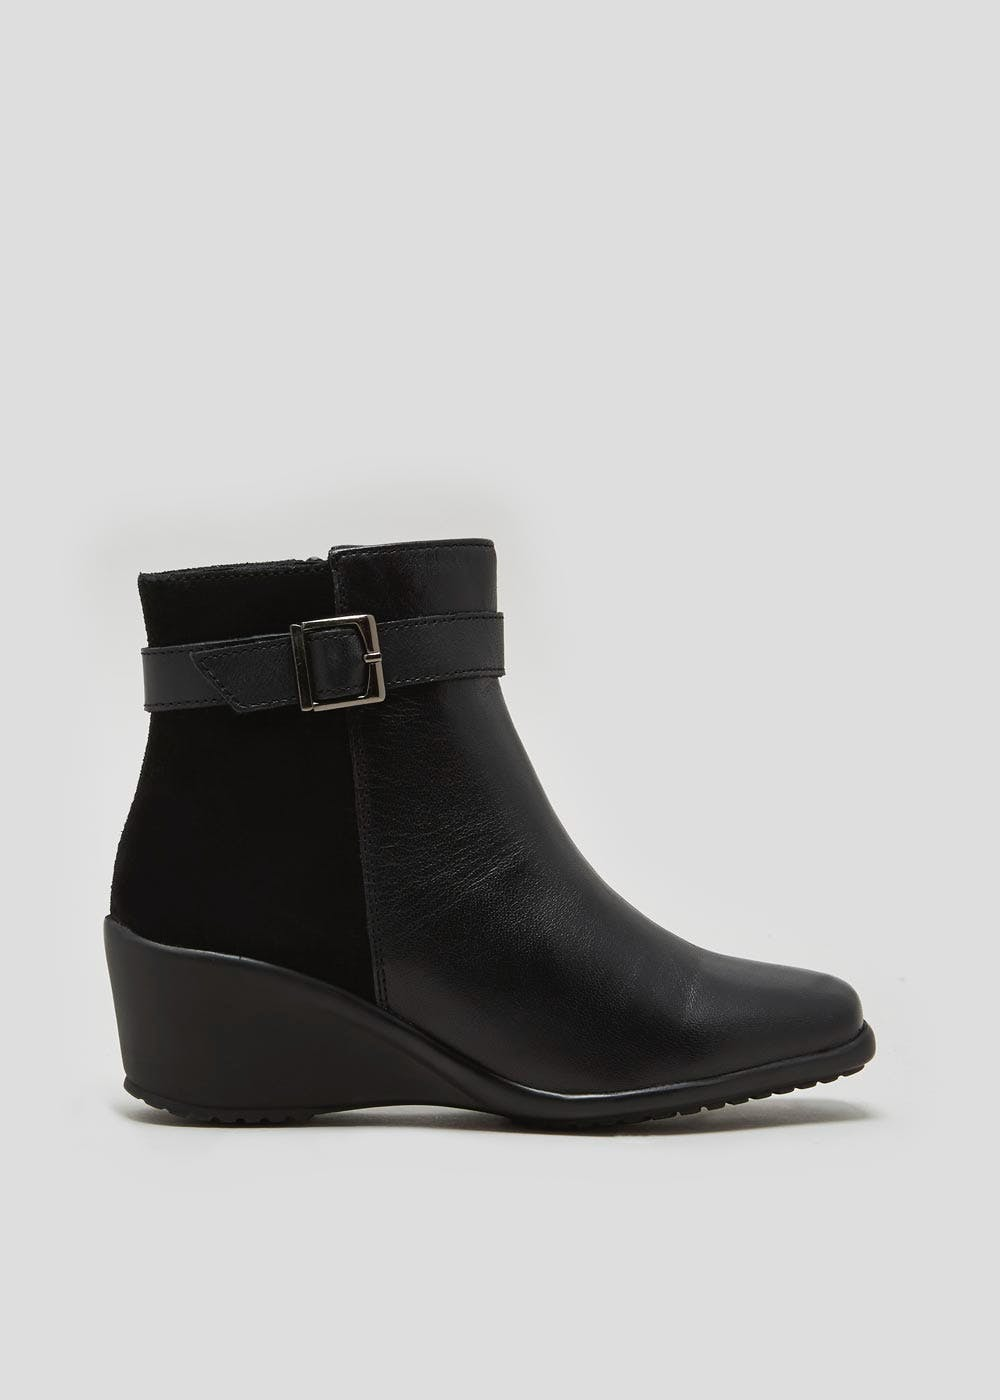 32d164aeedc Soleflex Real Leather Wedge Ankle Boots – Black – Matalan